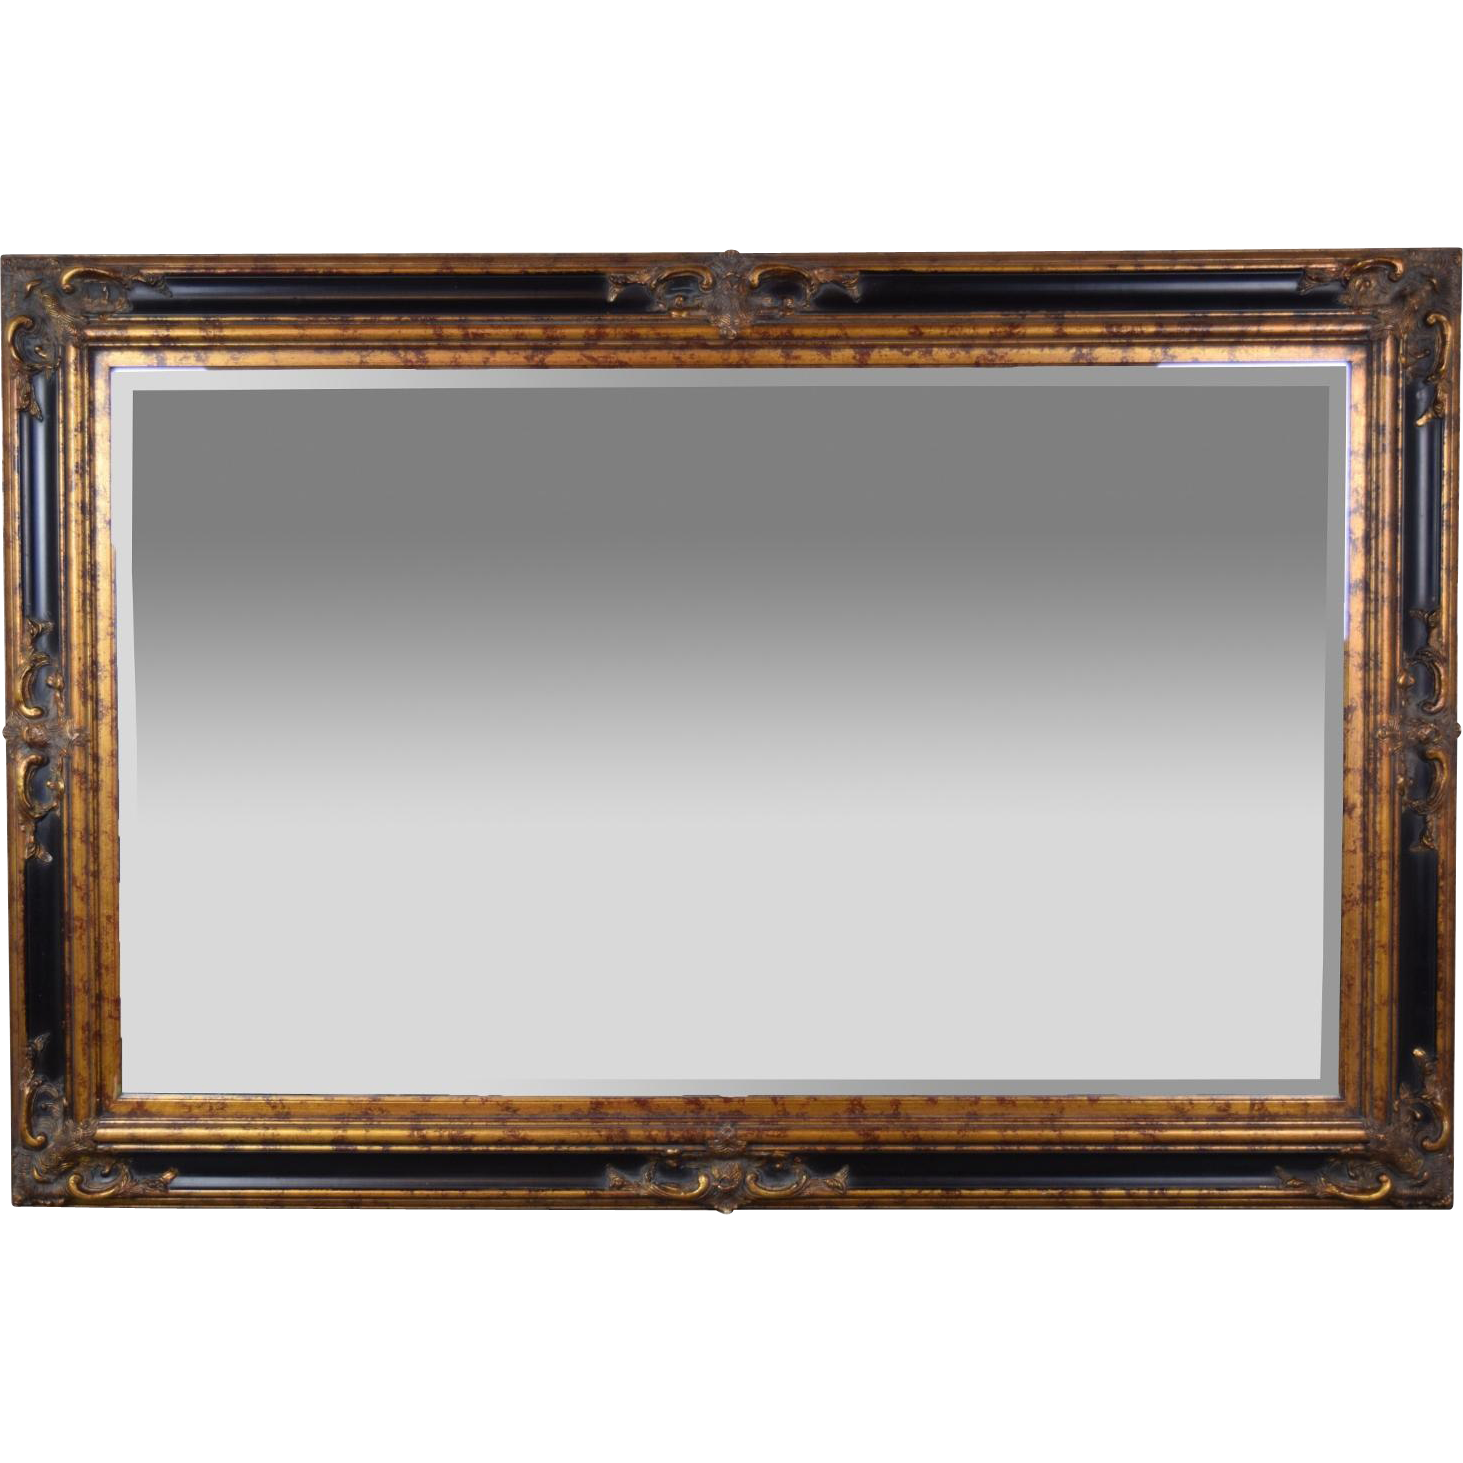 Large ft entree beveled. Vintage wood frame png